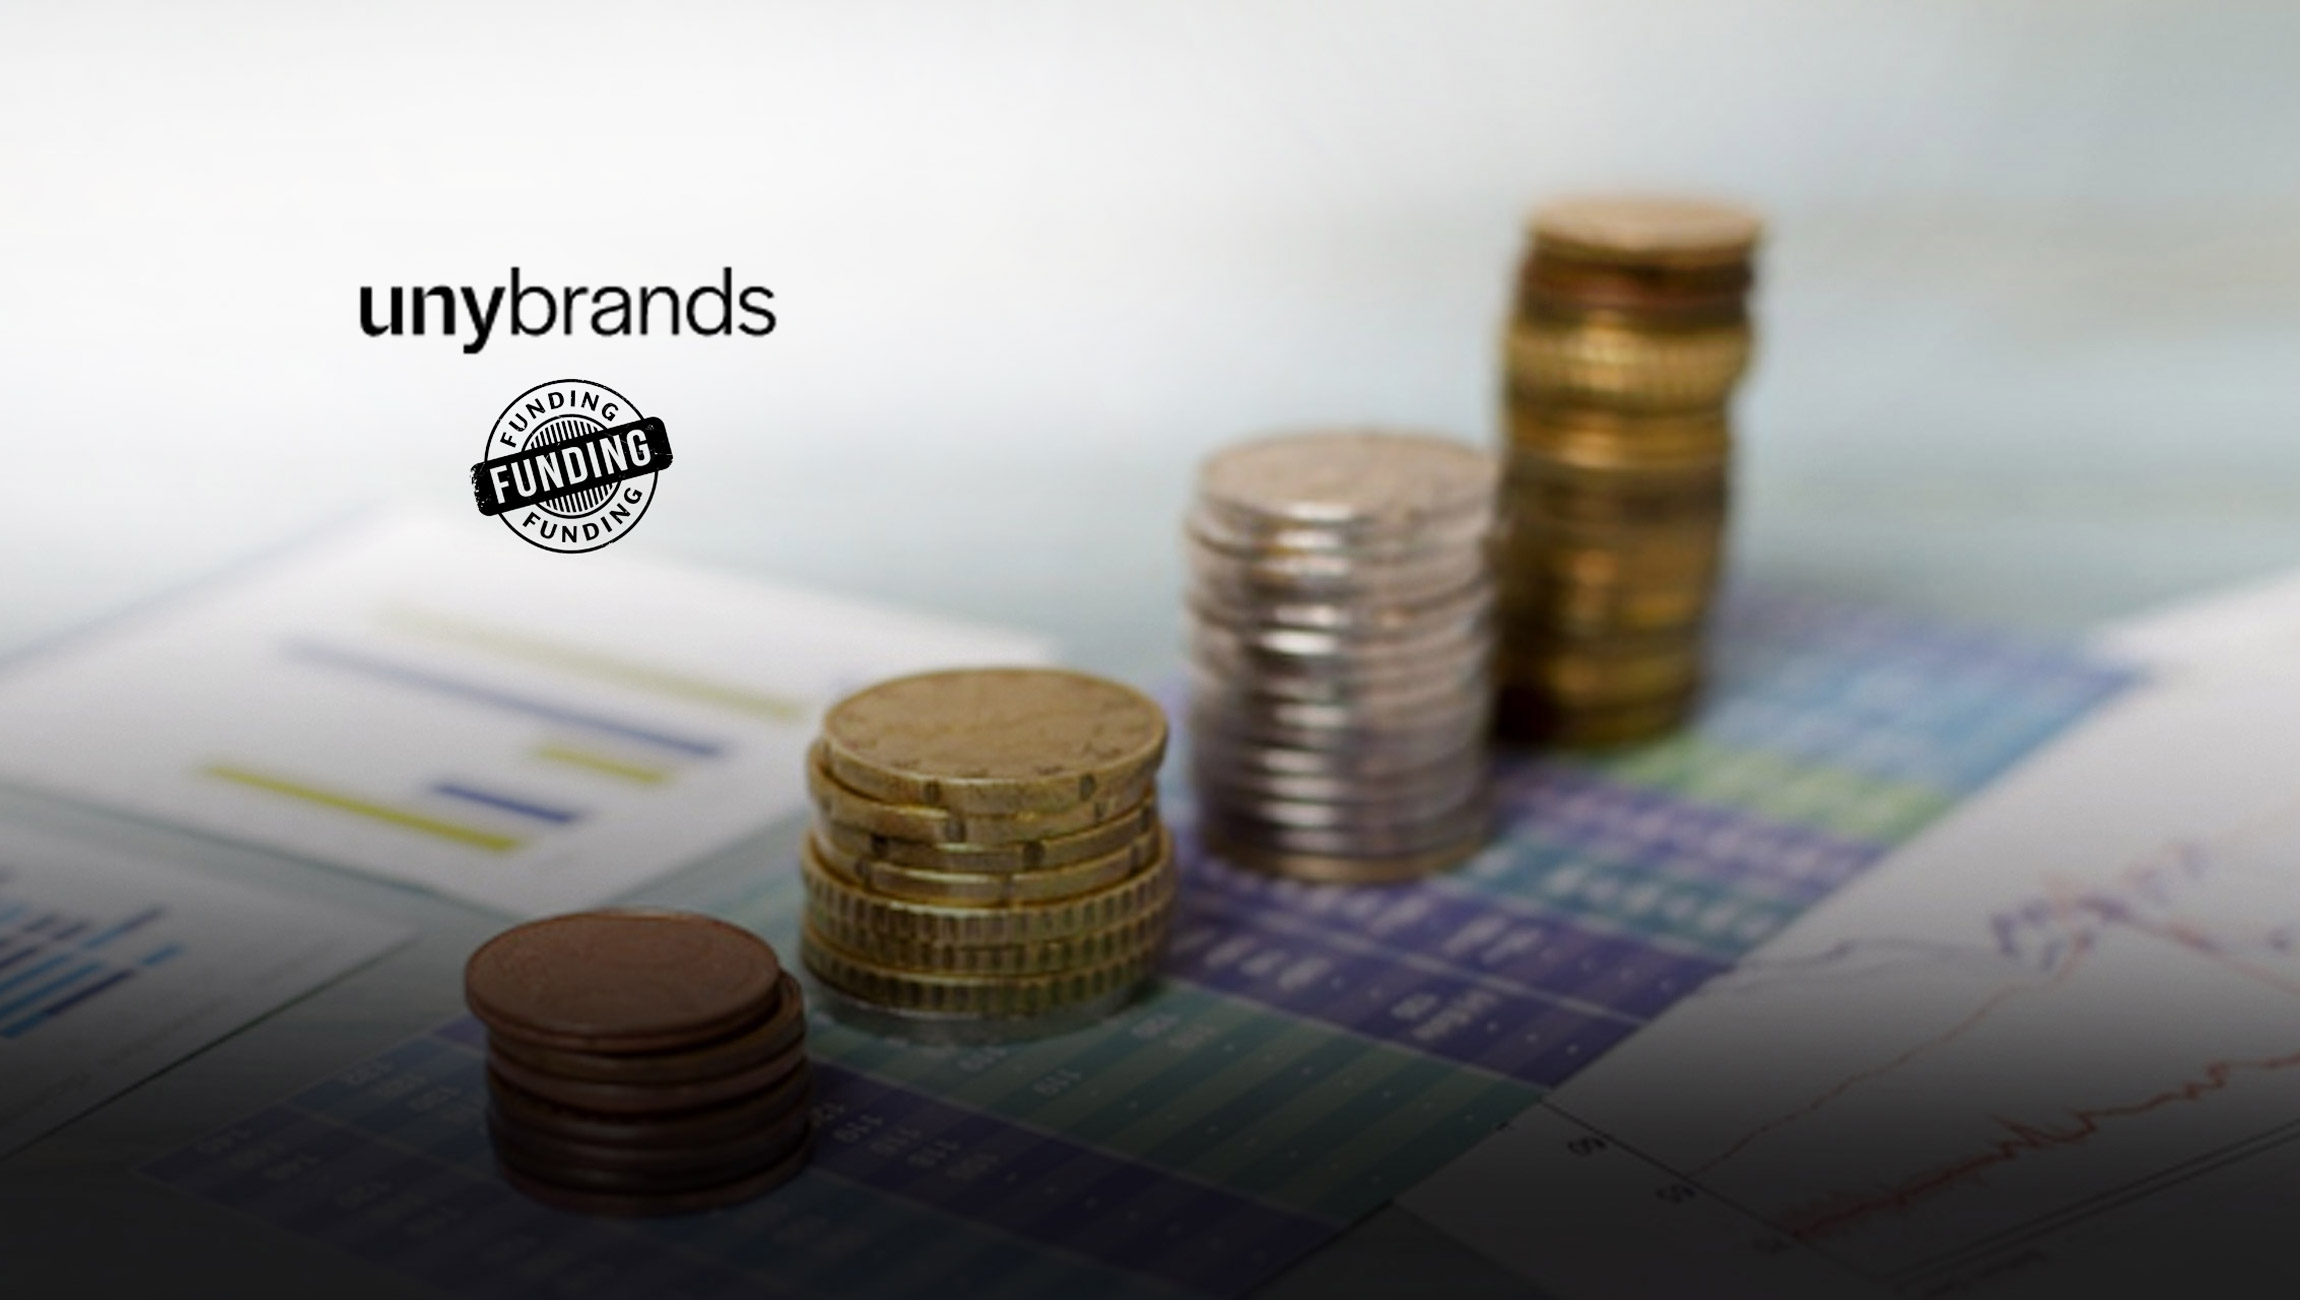 unybrands Launches E-Commerce Platform To Acquire & Maximize Growth Potential for Online Brands, Closes $25M Seed Funding Round